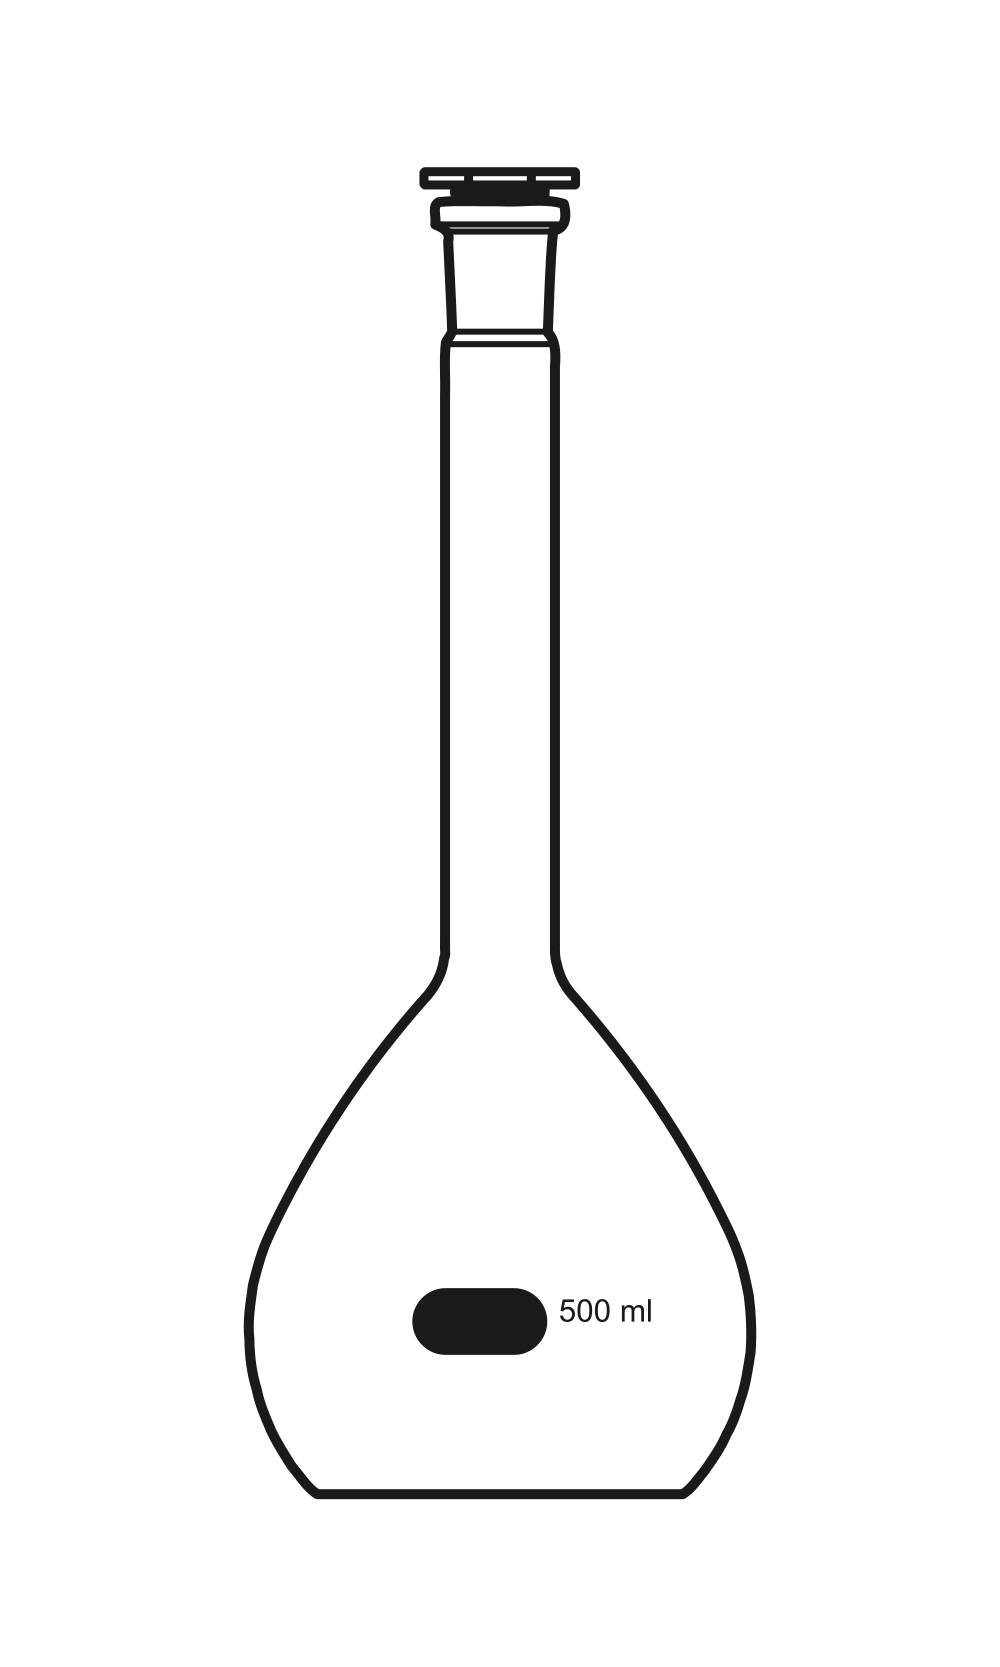 File flask svg wikimedia. Volumetric drawing vector free